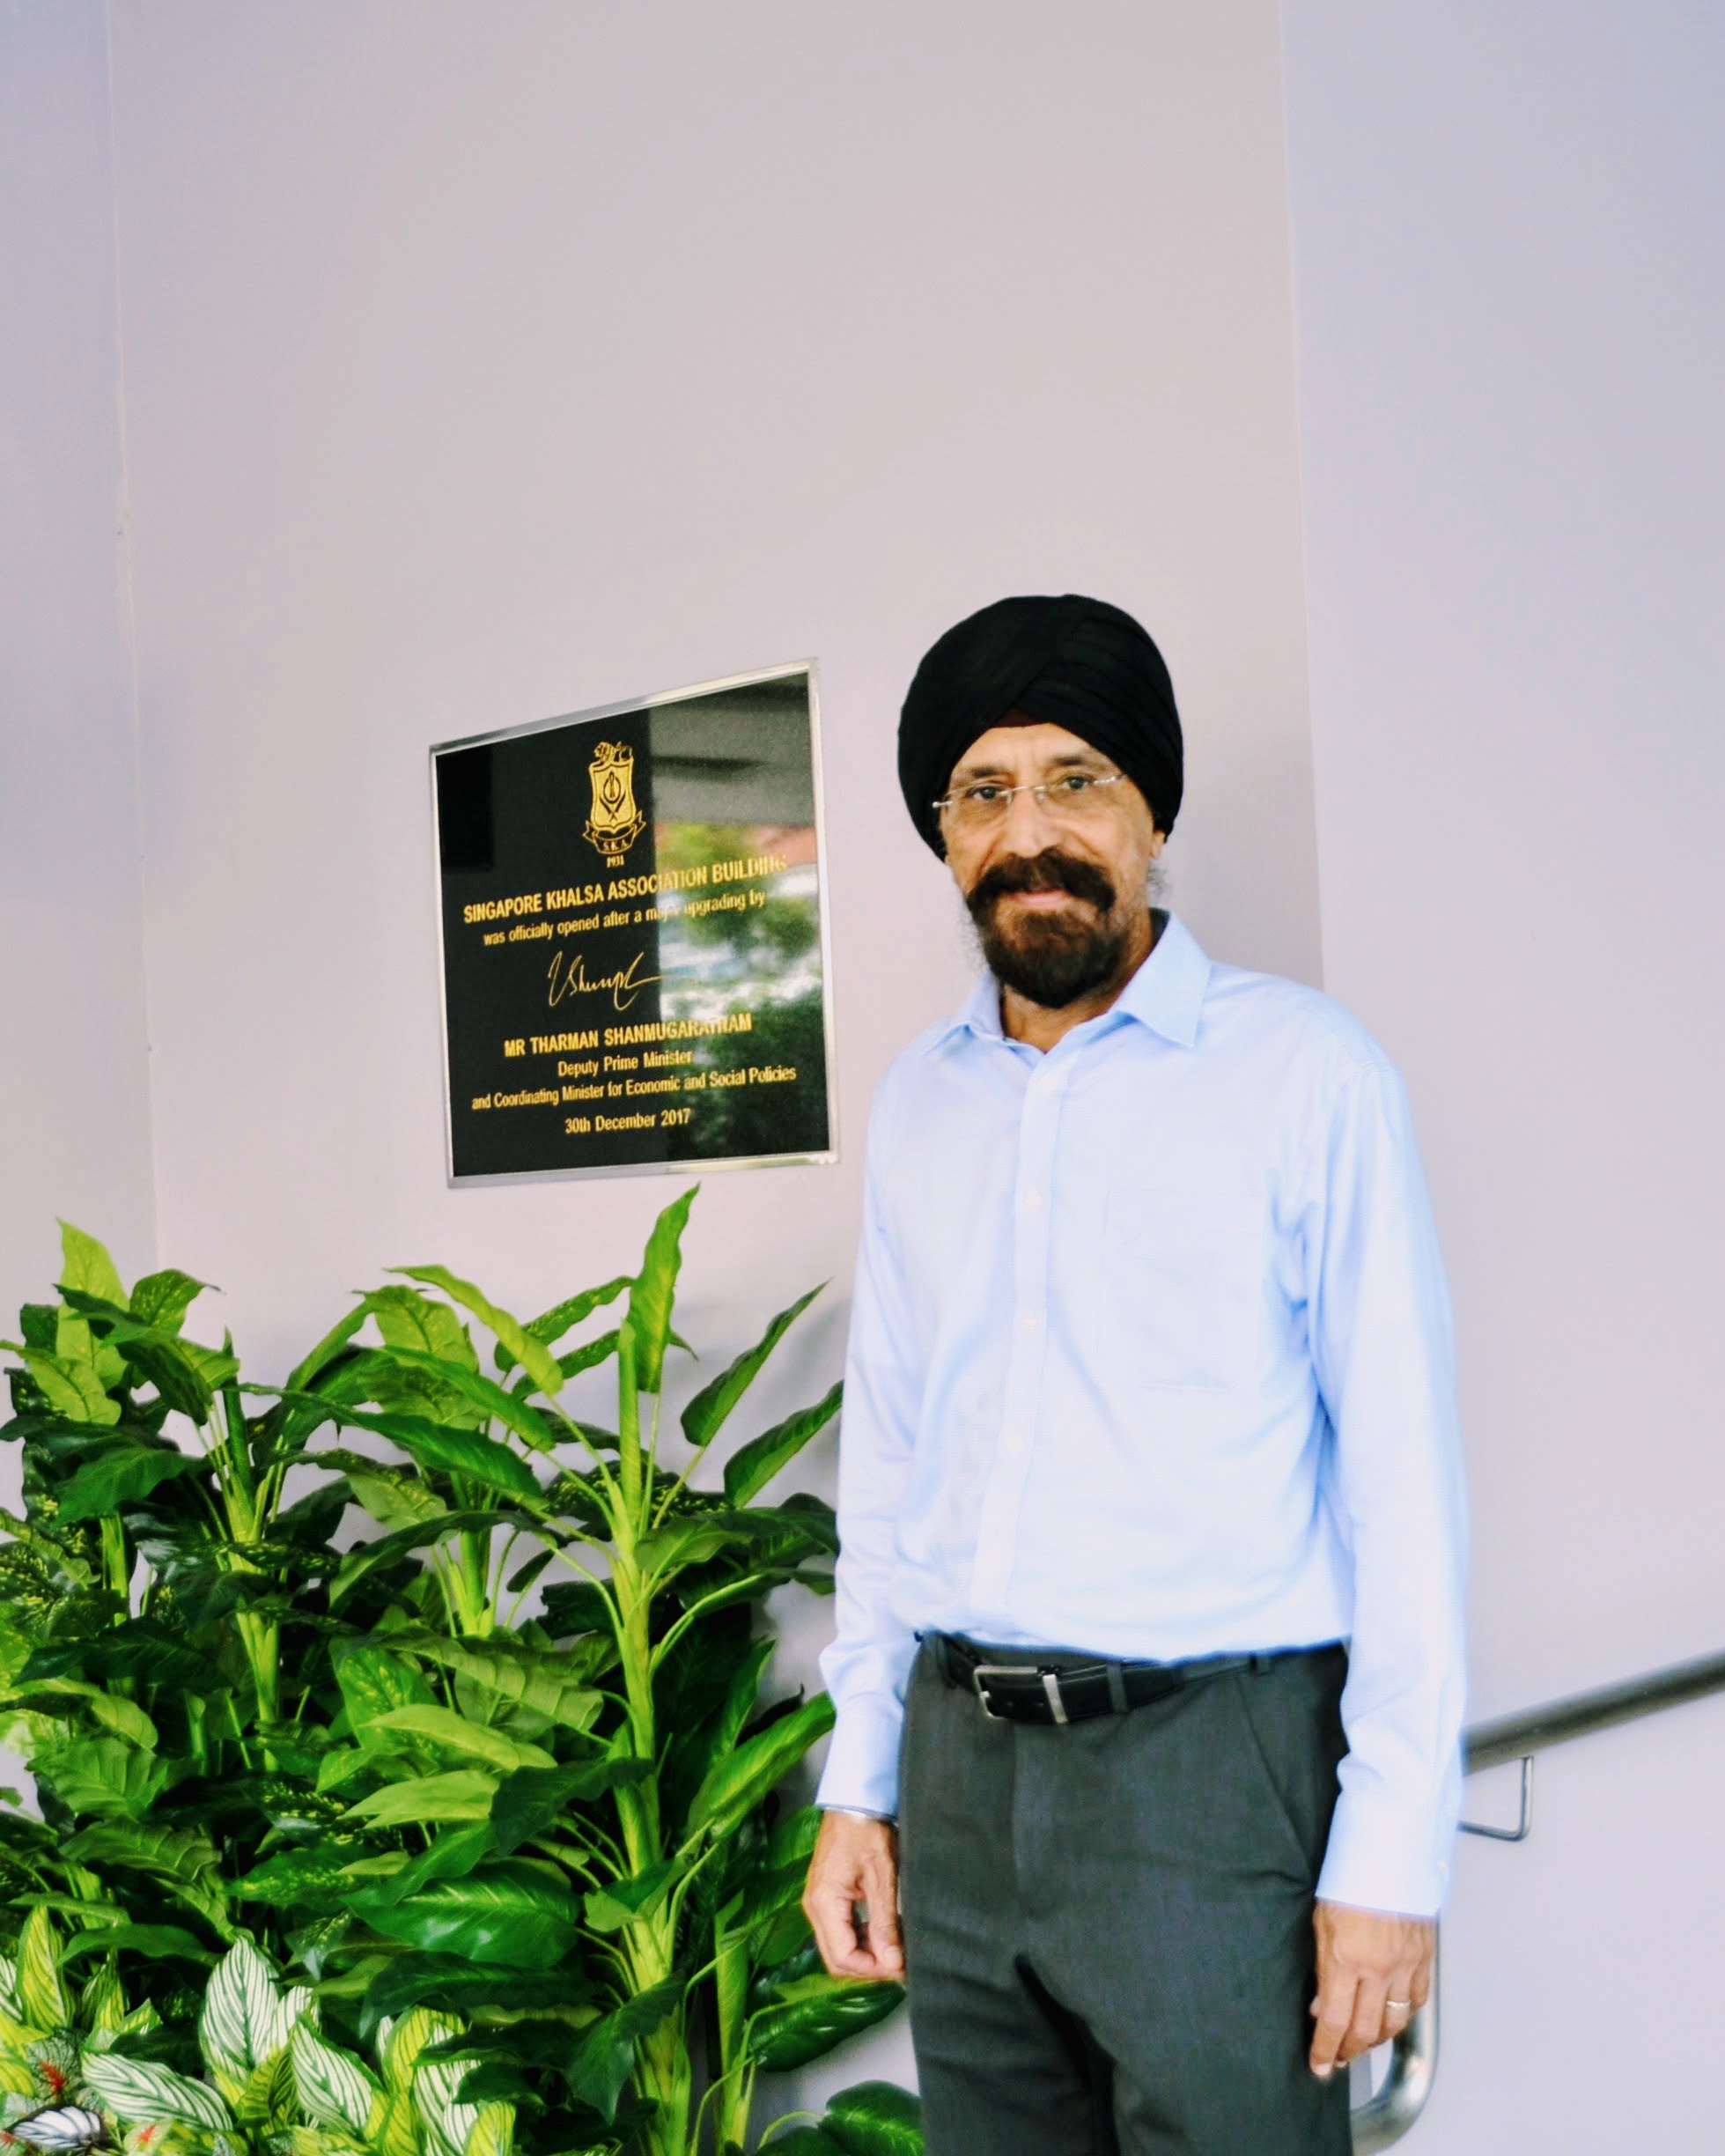 Born in Singapore, Mohinder's parents settled in the Lion City in the 1930s from their native region near Amritsar. Photo: Connected to India